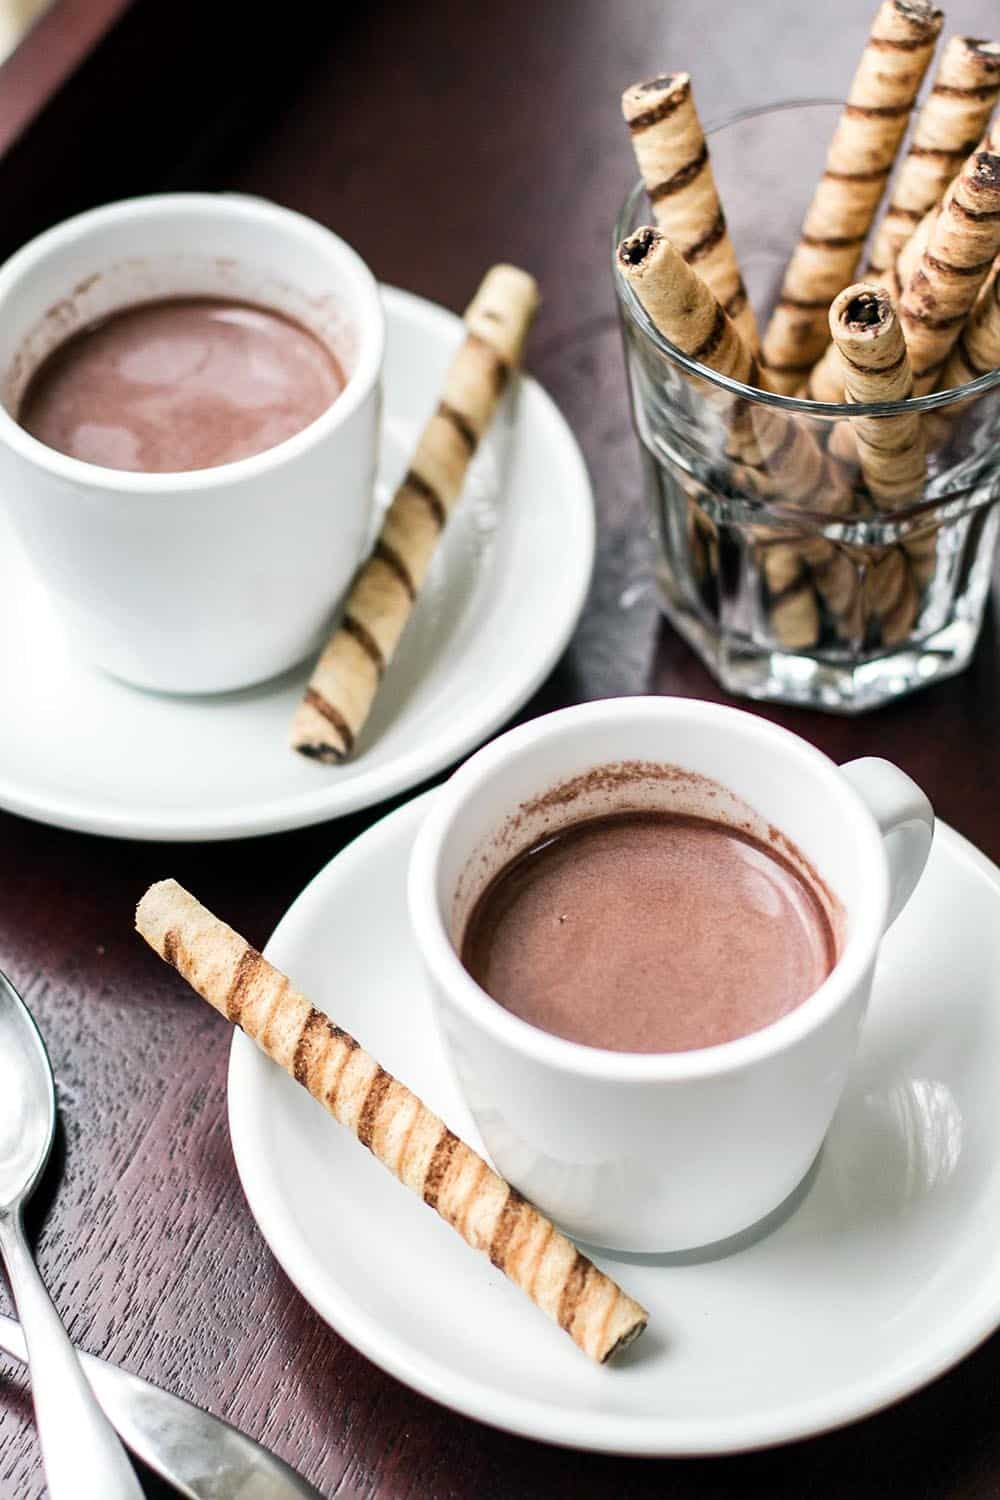 Quick and easy hot chocolate in two white mugs with saucers and cookies on the side